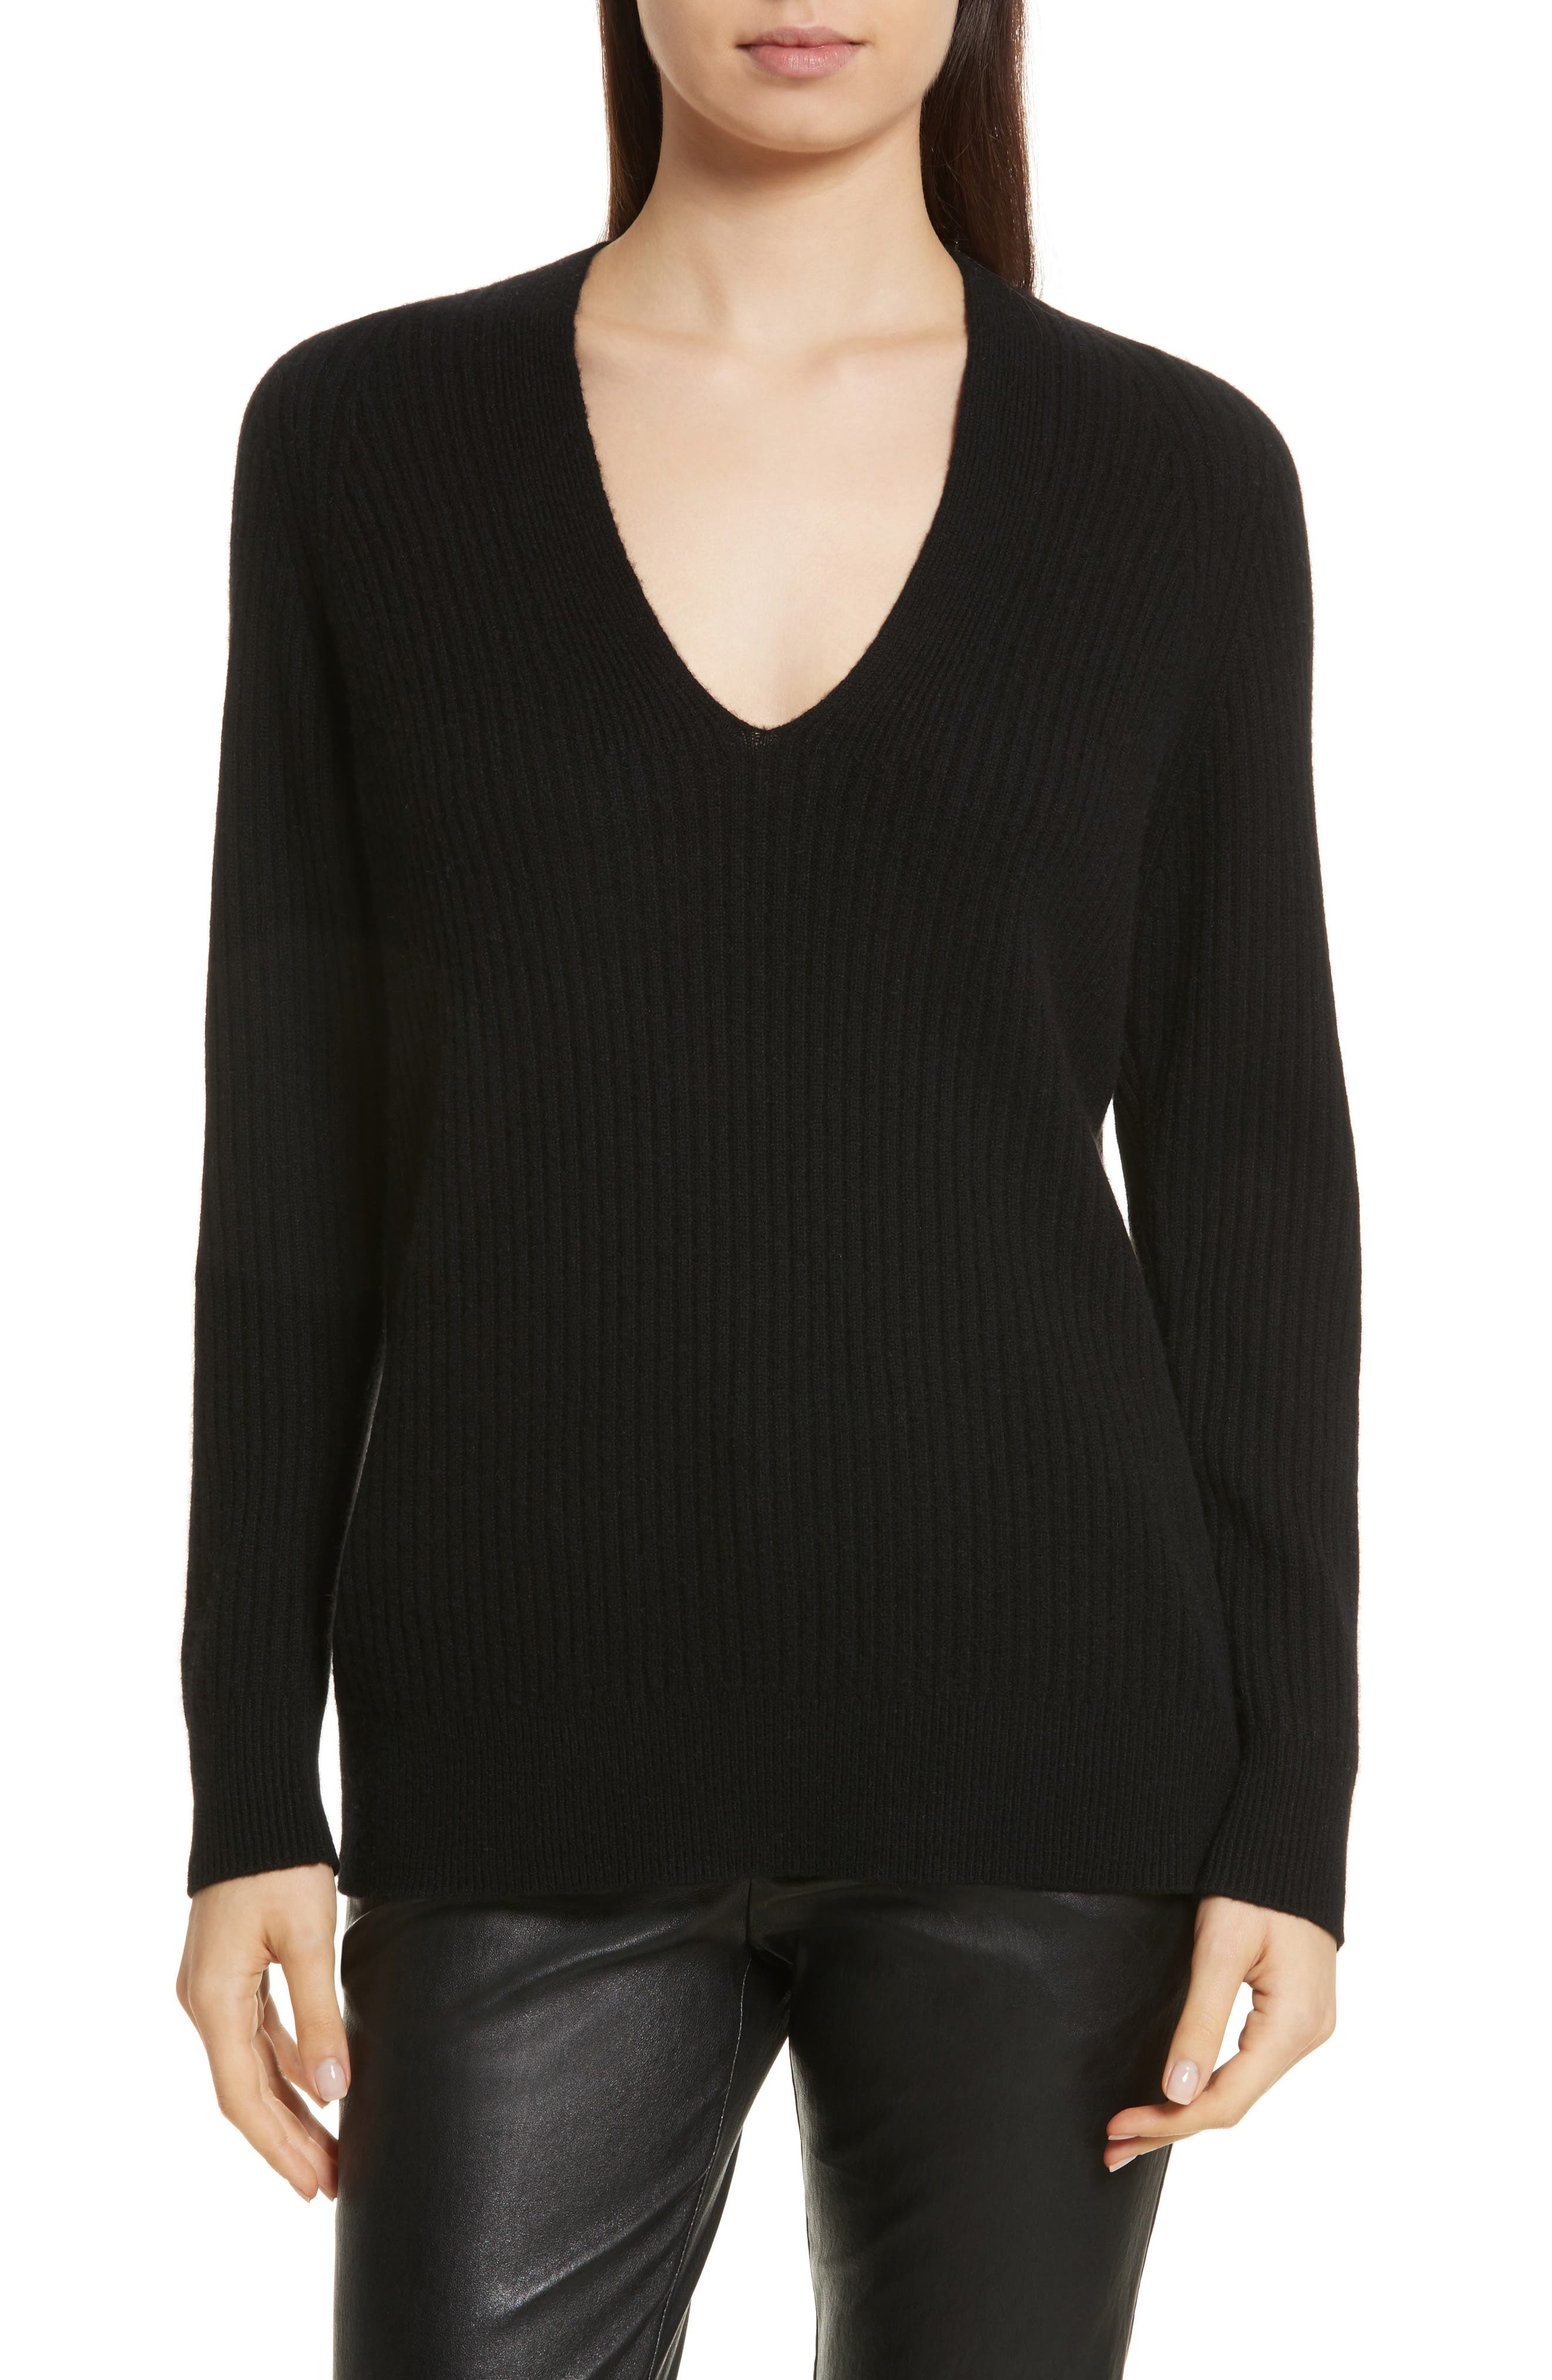 Women's V-Neck Cashmere Sweaters | Nordstrom